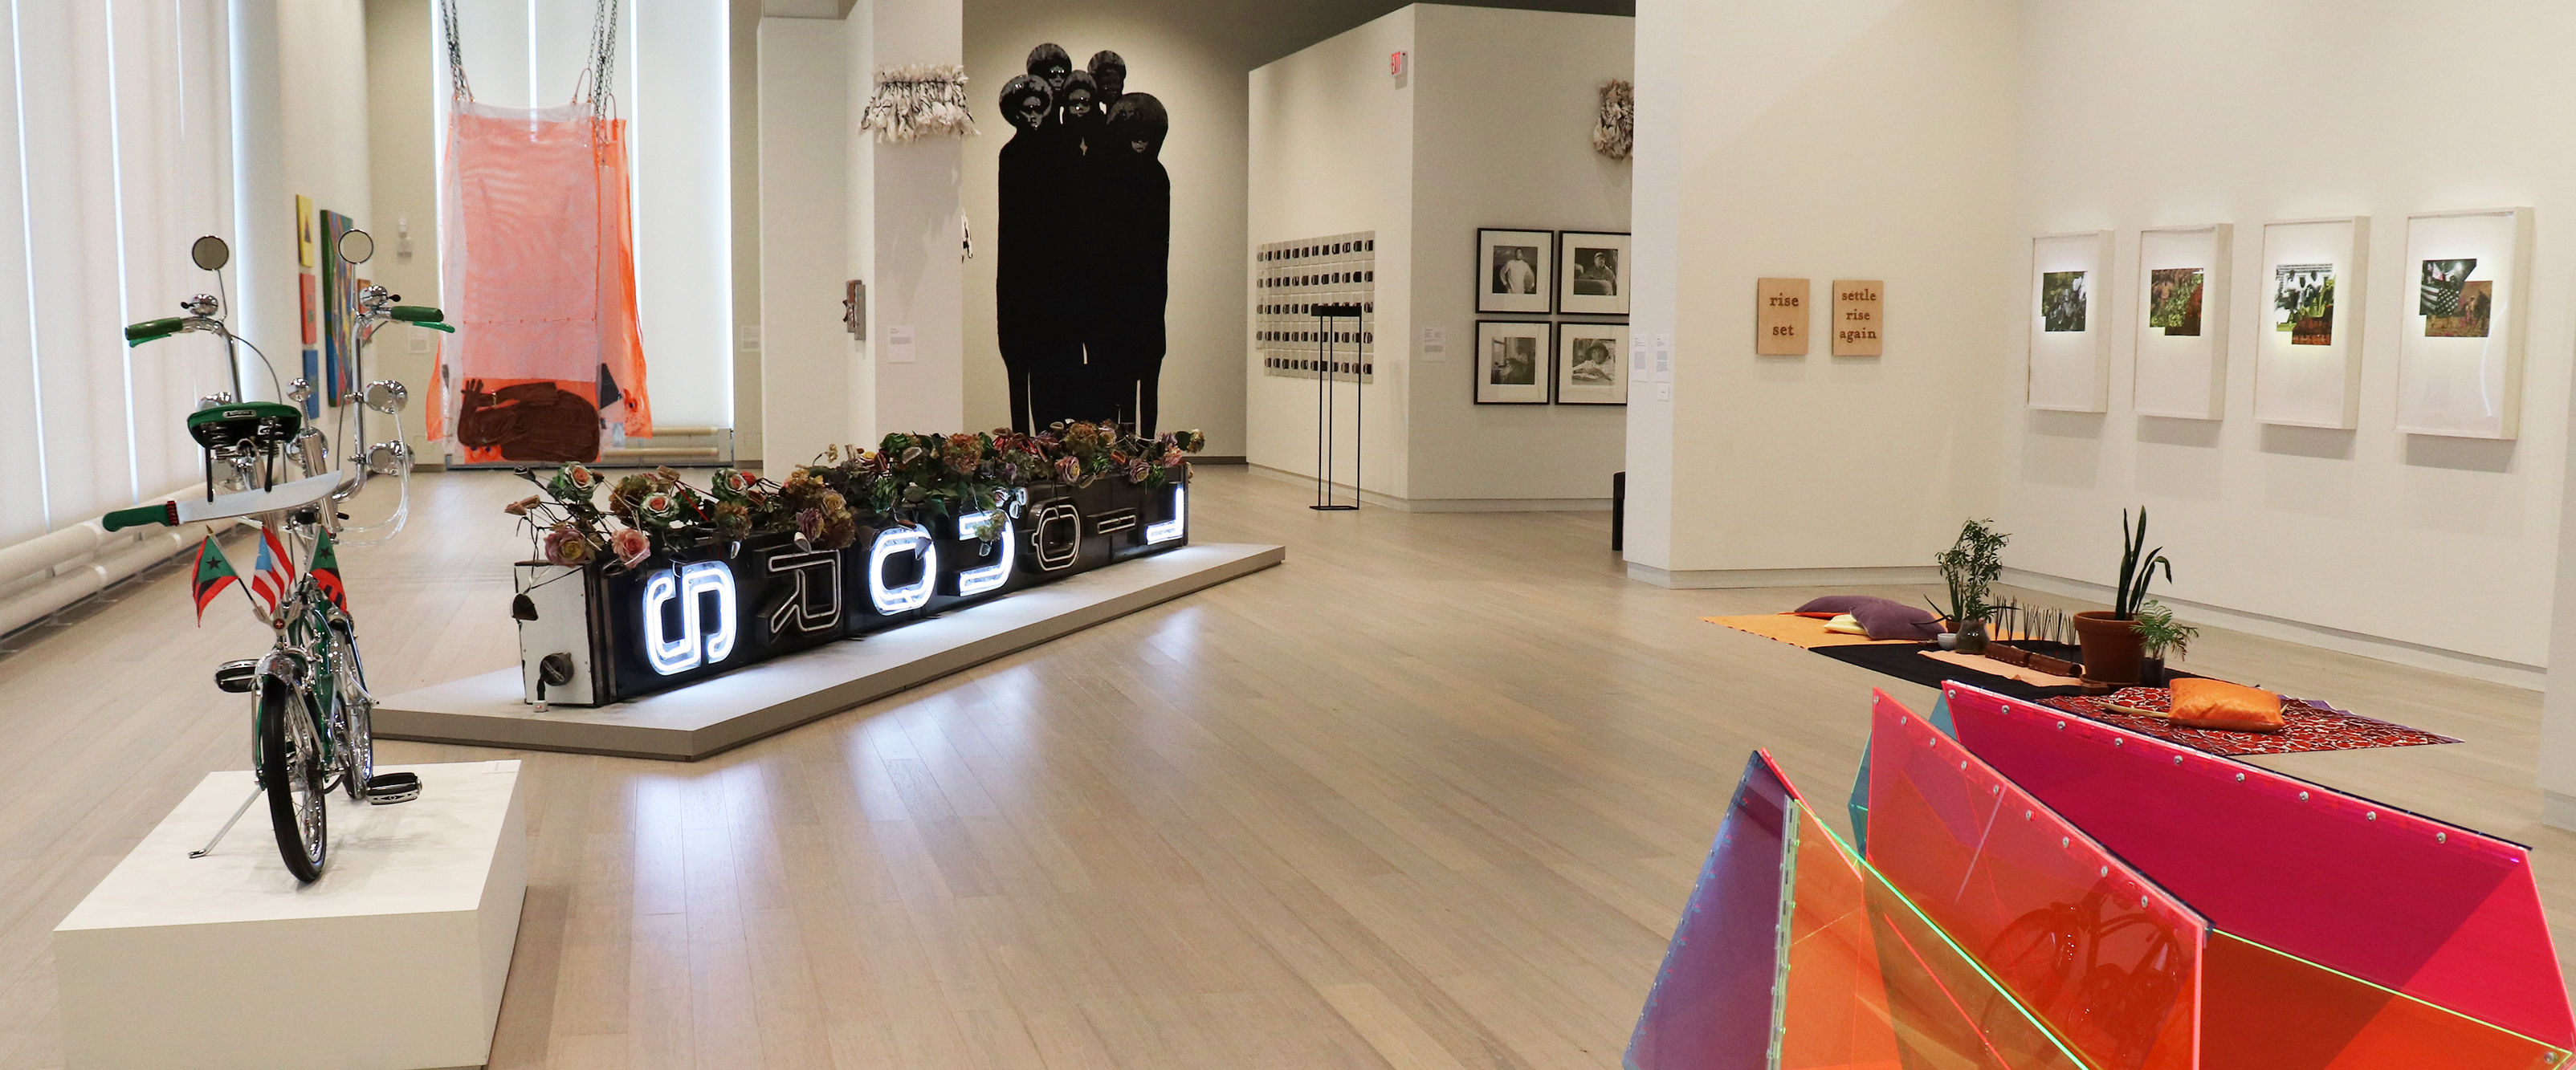 Uptown (Installation View). On view at the Wallach Art Gallery June 2 - August 20, 2017. Photograph by Eddie Bartolomei.